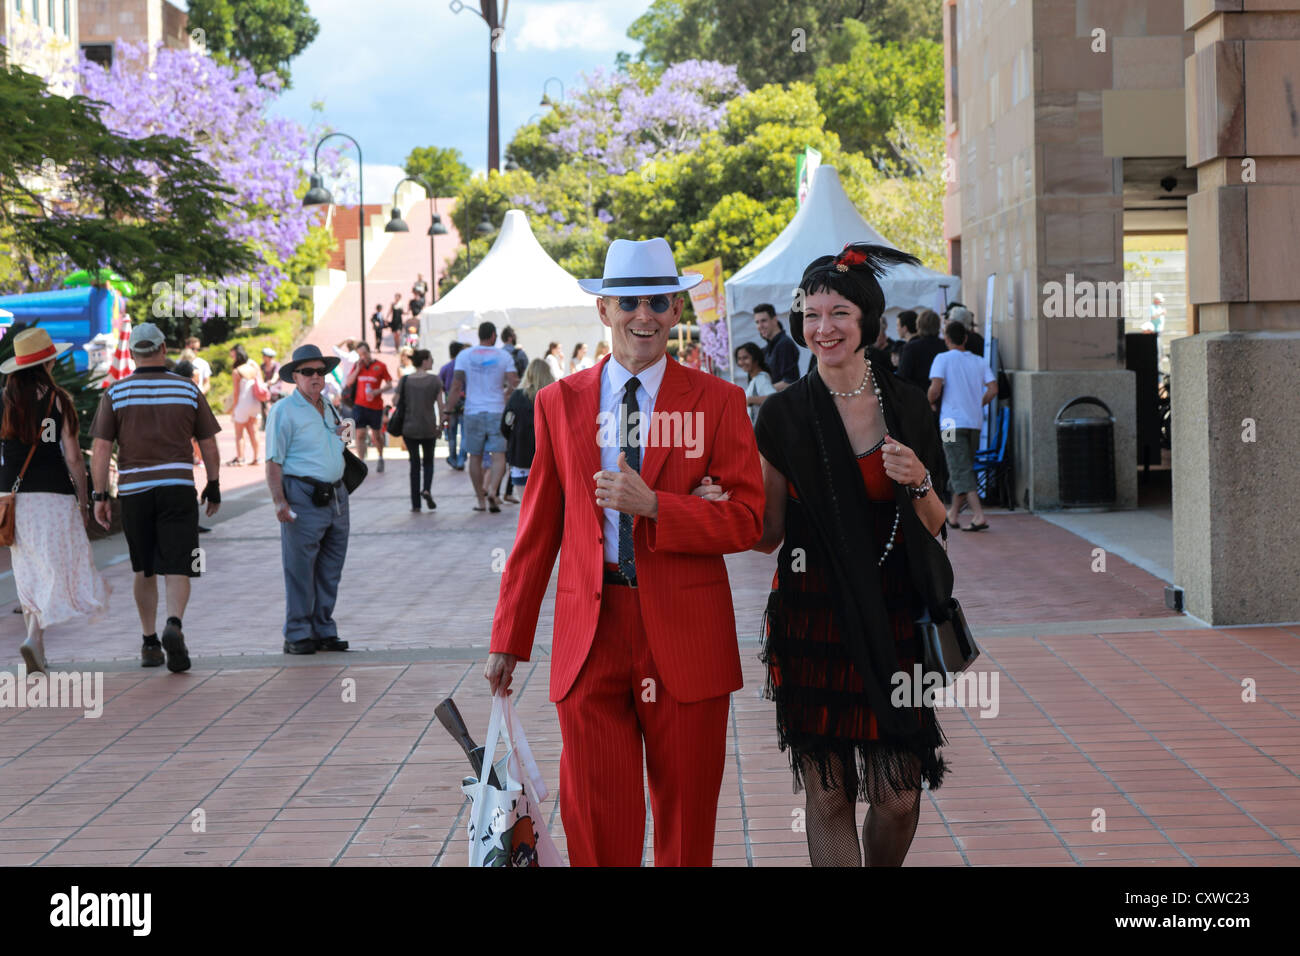 A couple dressed in a 1920s' style at themed event at Bond University festival - Stock Image